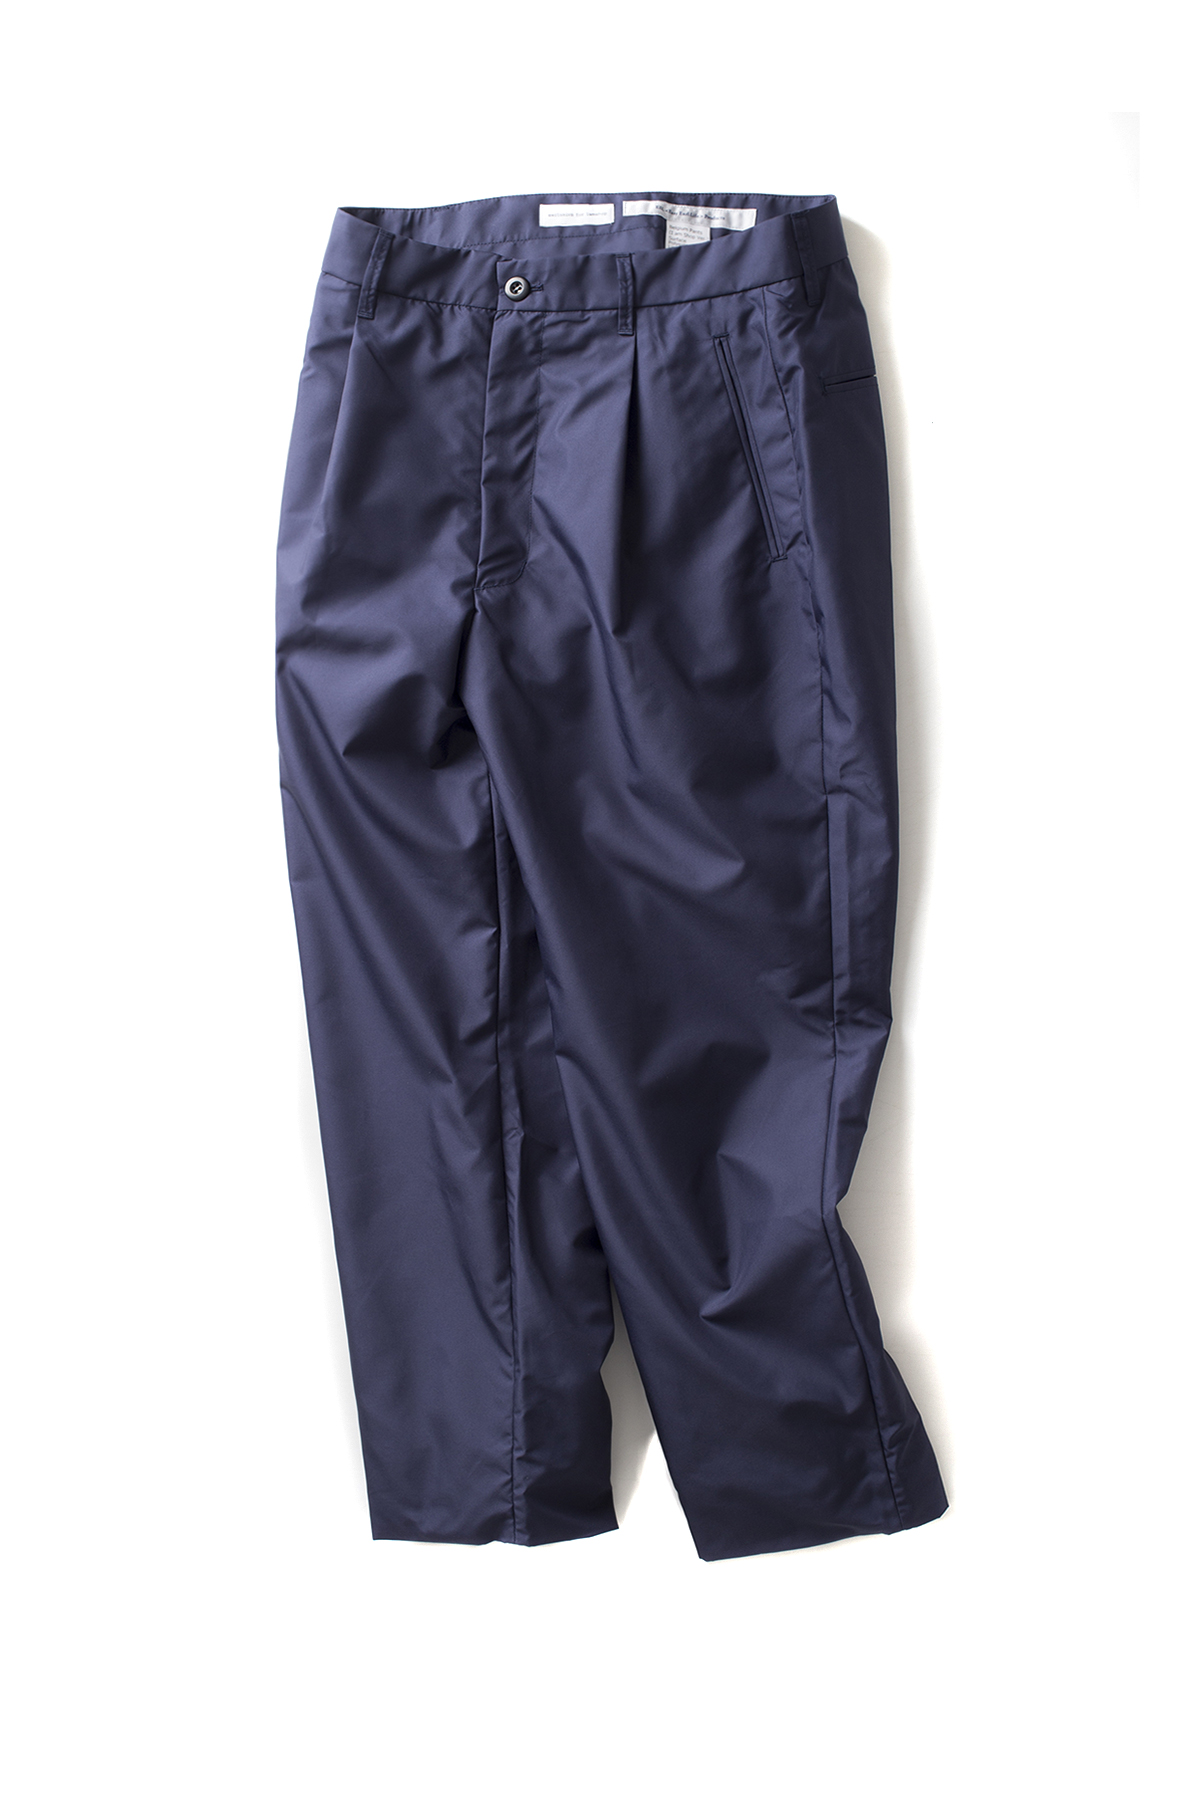 EEL : Belgium Pants  I AM SHOP Ver. (Navy)